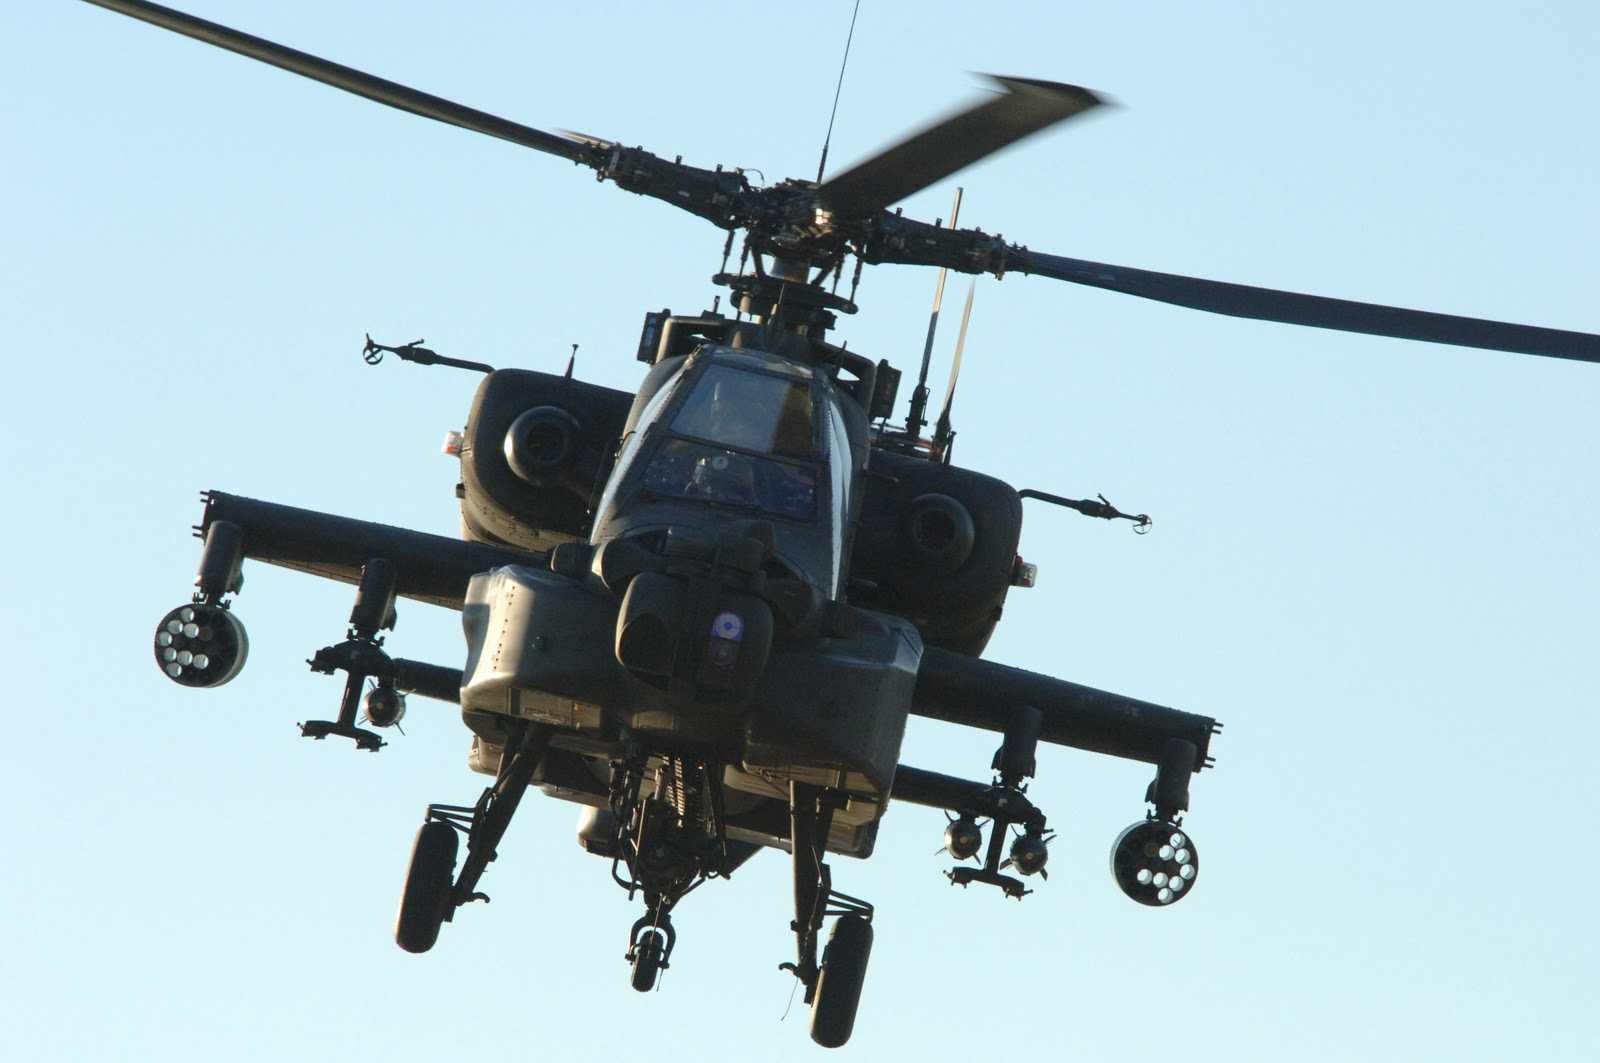 Apache Helicopter Wallpaper Desktop: Apache Helicopters Sunset HD Wallpapers